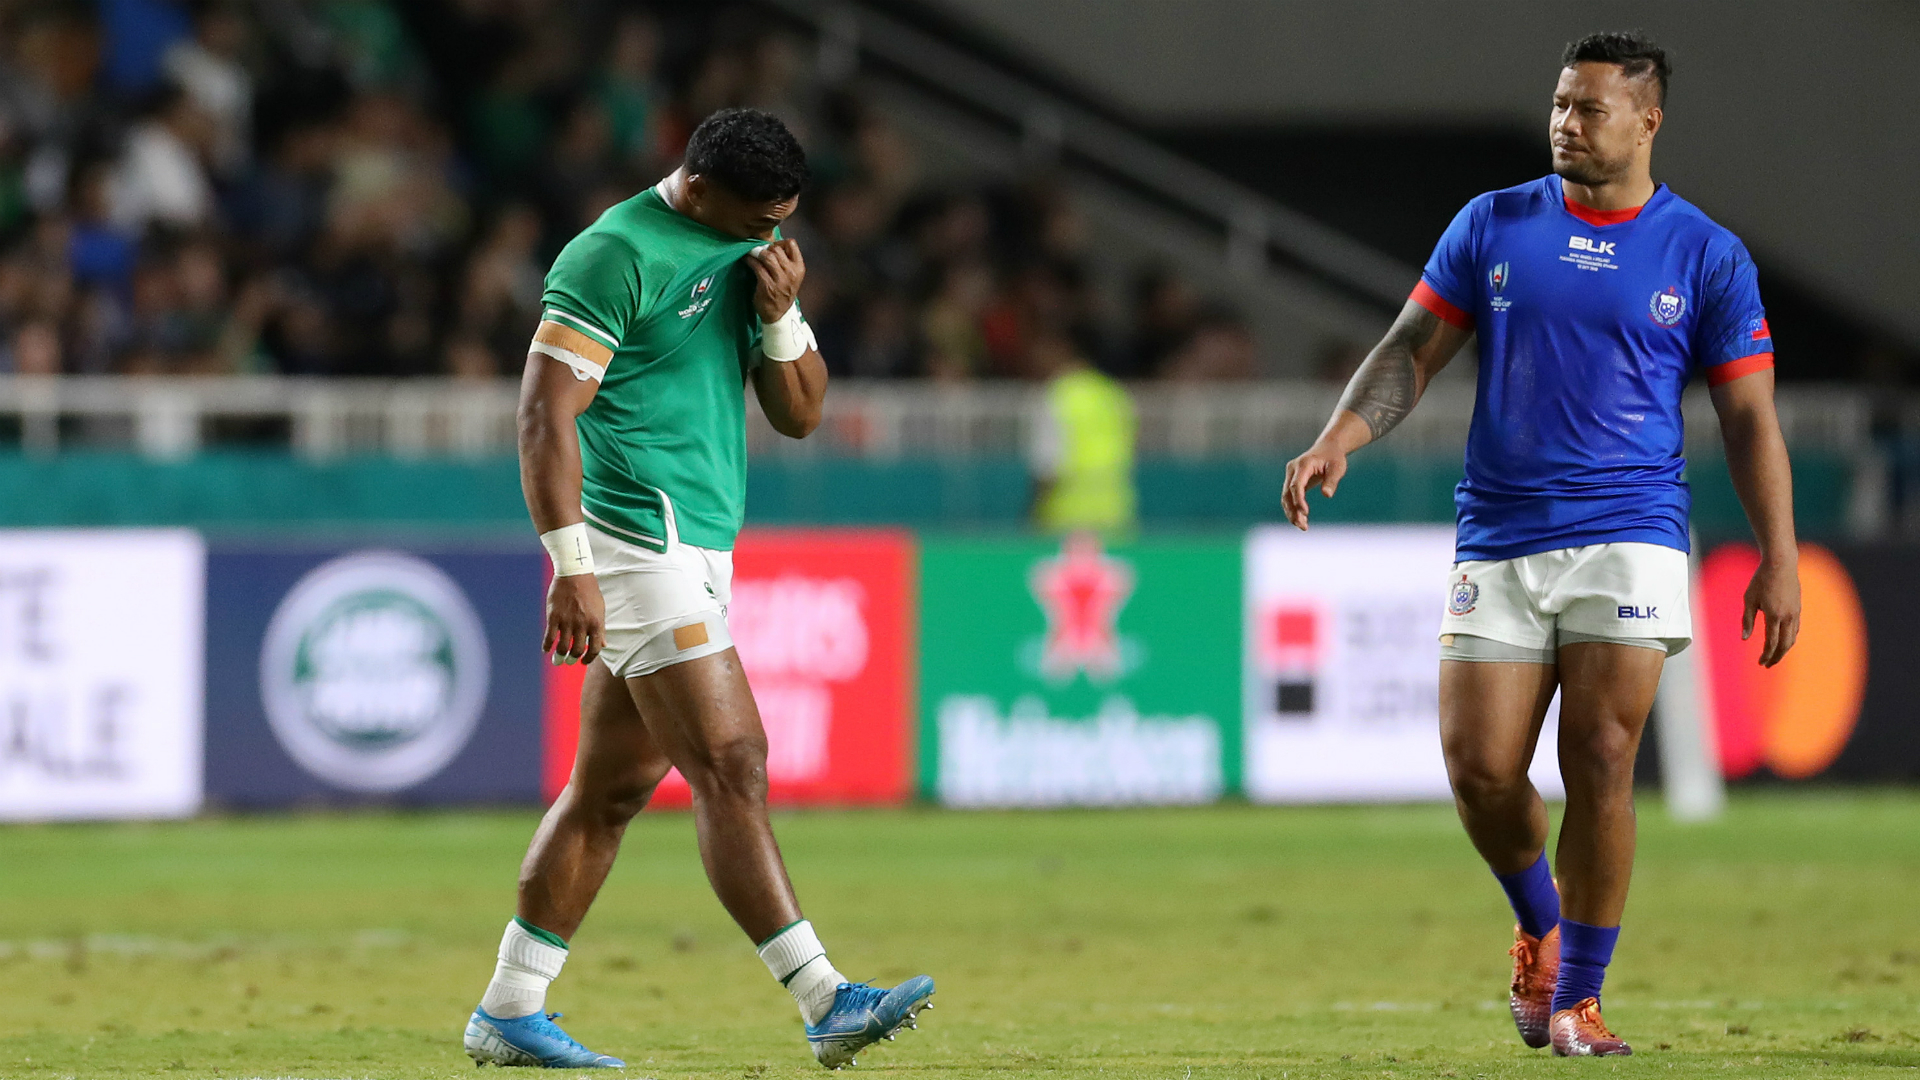 Rugby World Cup 2019: Ireland Aki to play no further part in Japan after three-week ban